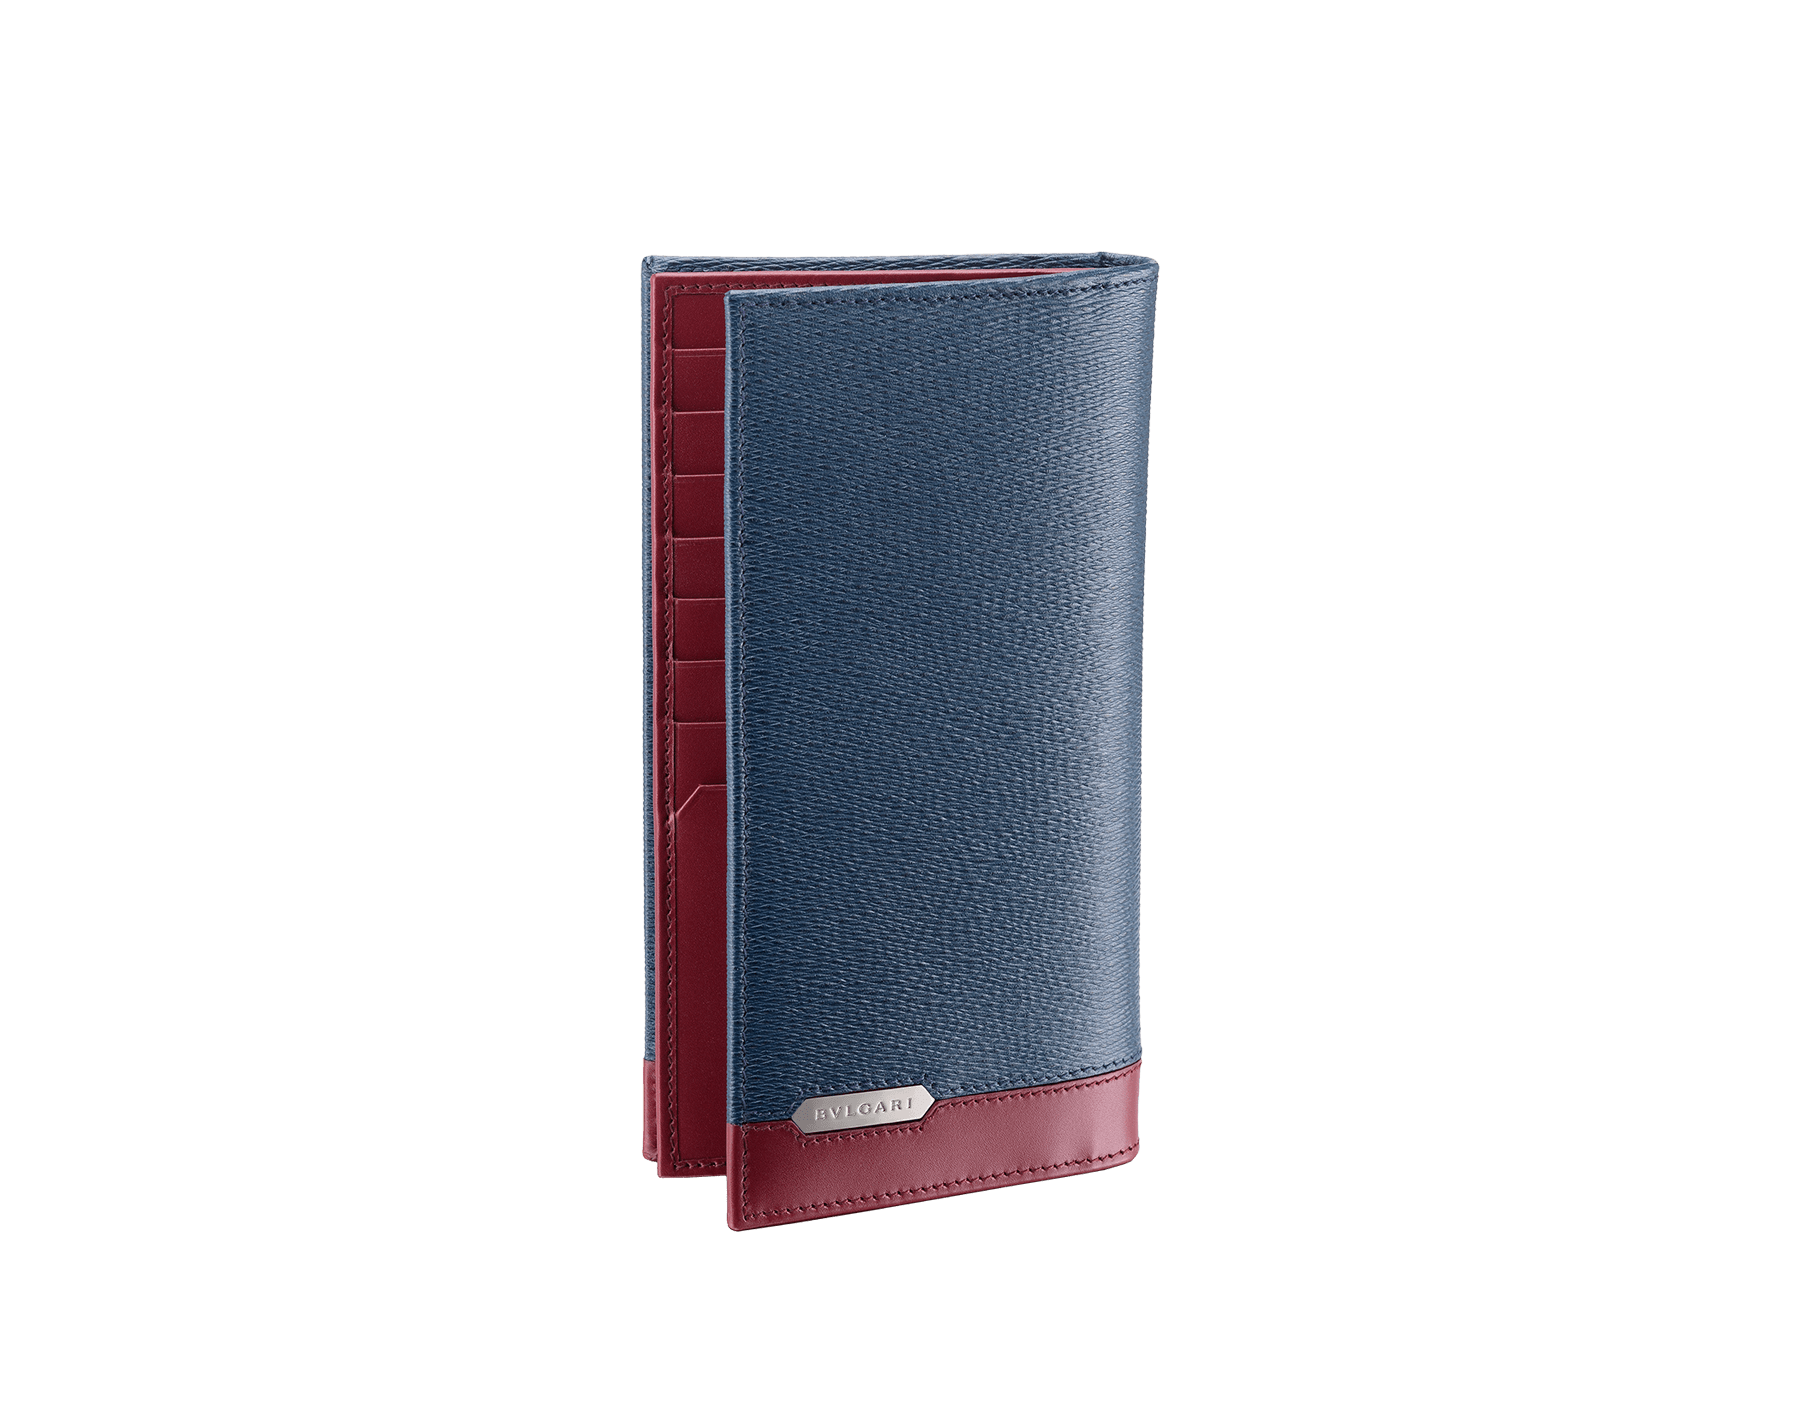 Serpenti Scaglie men's wallet for yen in denim sapphire grazed calf leather with brass and roman garnet calf leather. Bvlgari logo engraved on the hexagonal scaglie metal plate. 288463 image 1